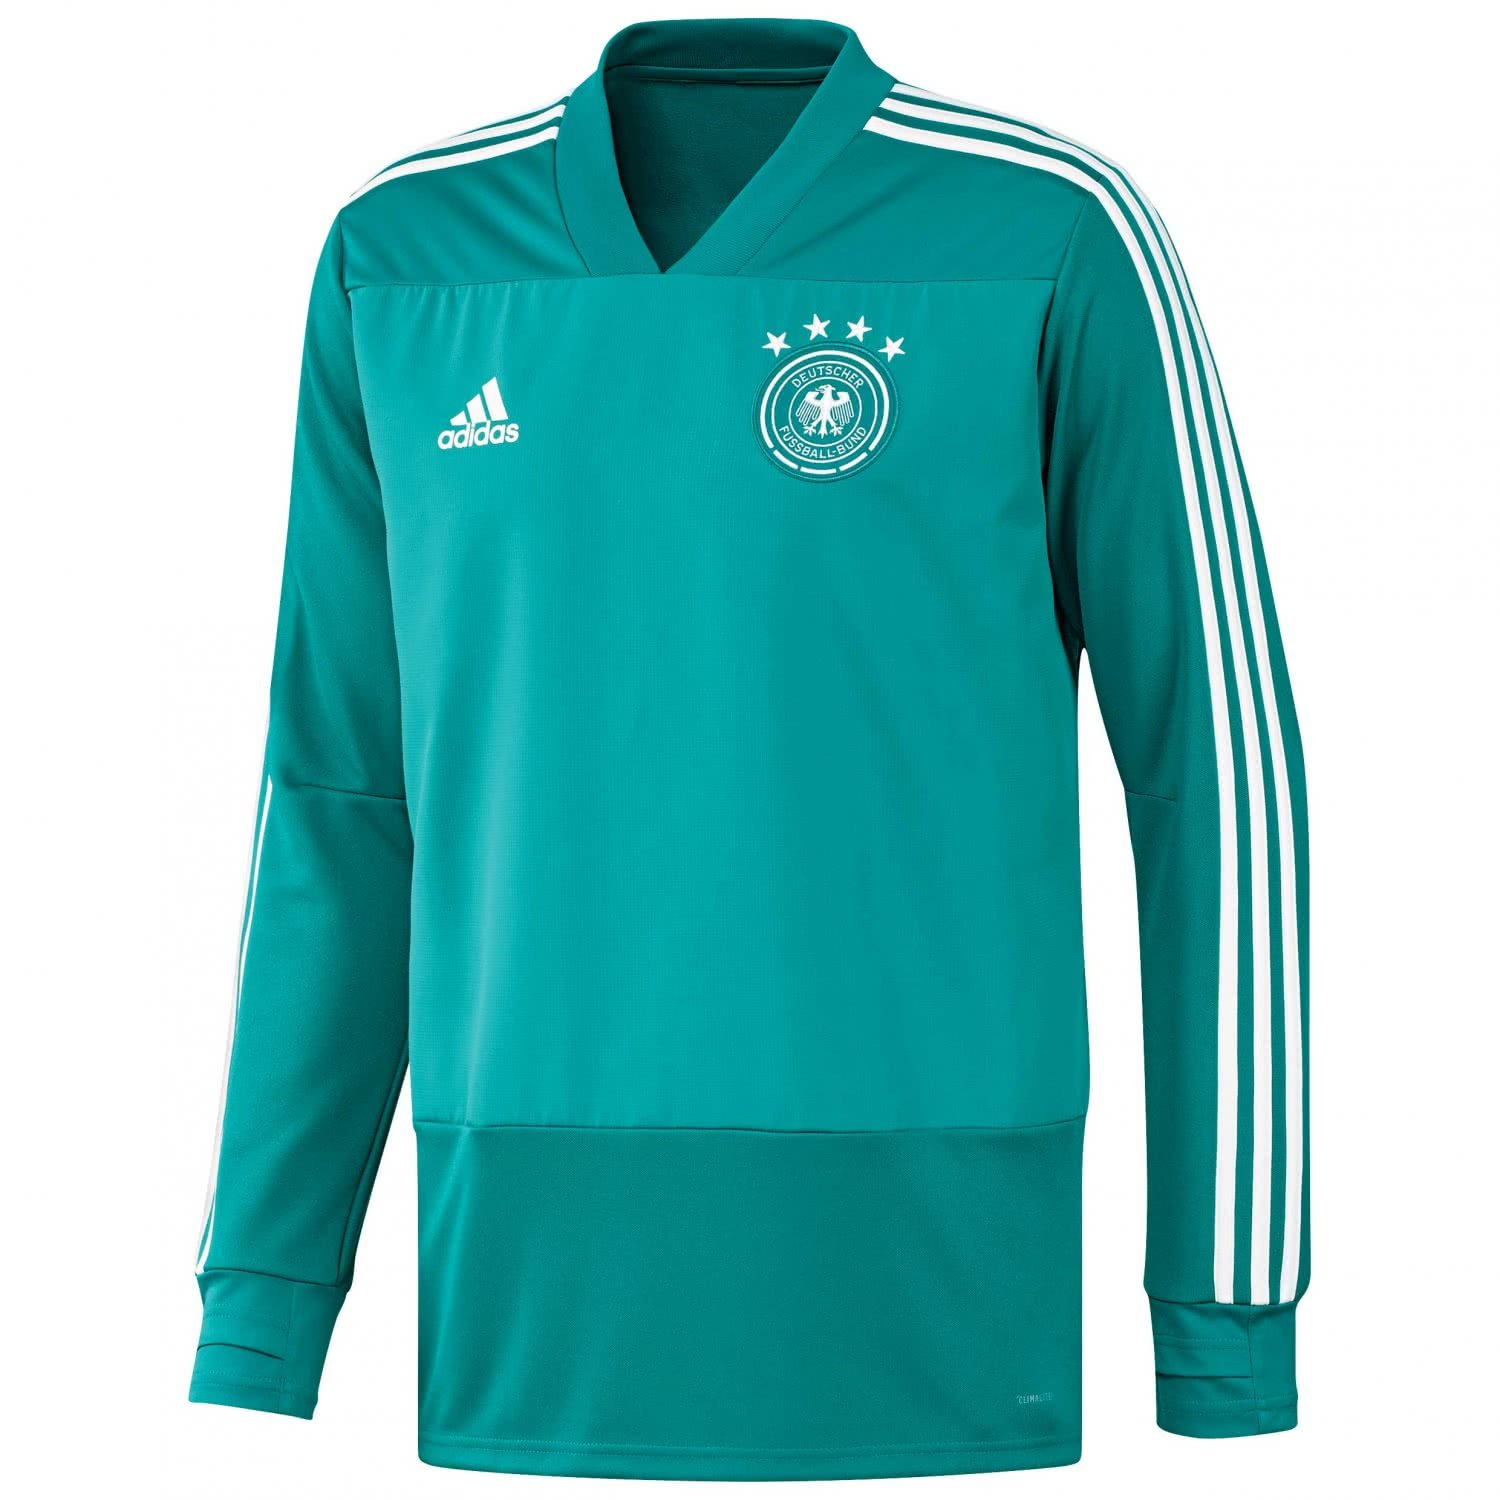 2018-2019 Germany Adidas Training Top (Green) B0779BVBKQGreen XL 44-46\